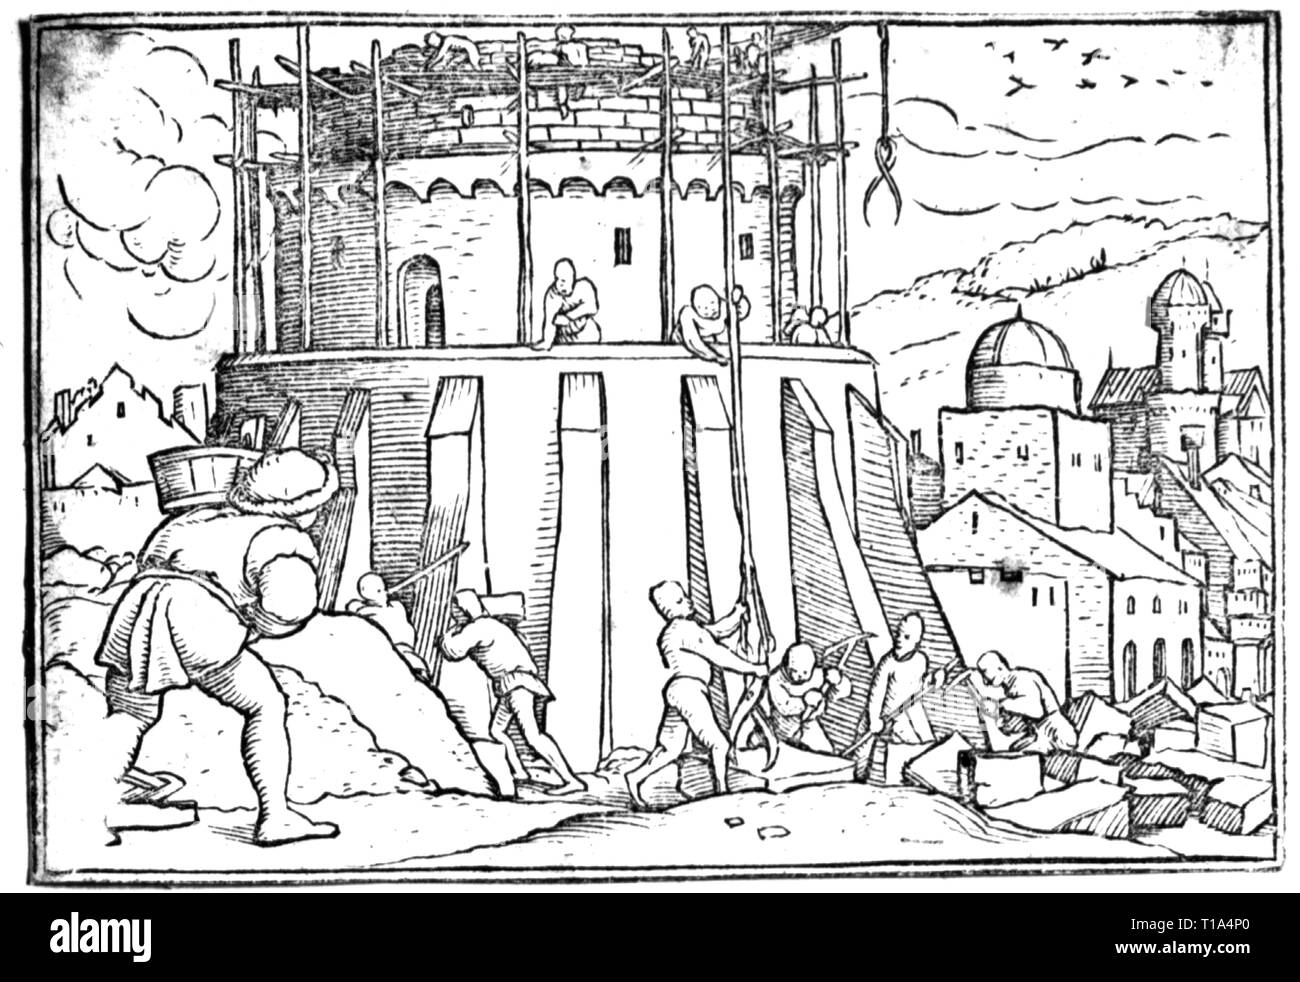 religion, biblical scene, Tower of Babel, drawing, by Hans Holbein the Younger (1497 / 1498 - 1543), 16th century, Artist's Copyright has not to be cleared - Stock Image